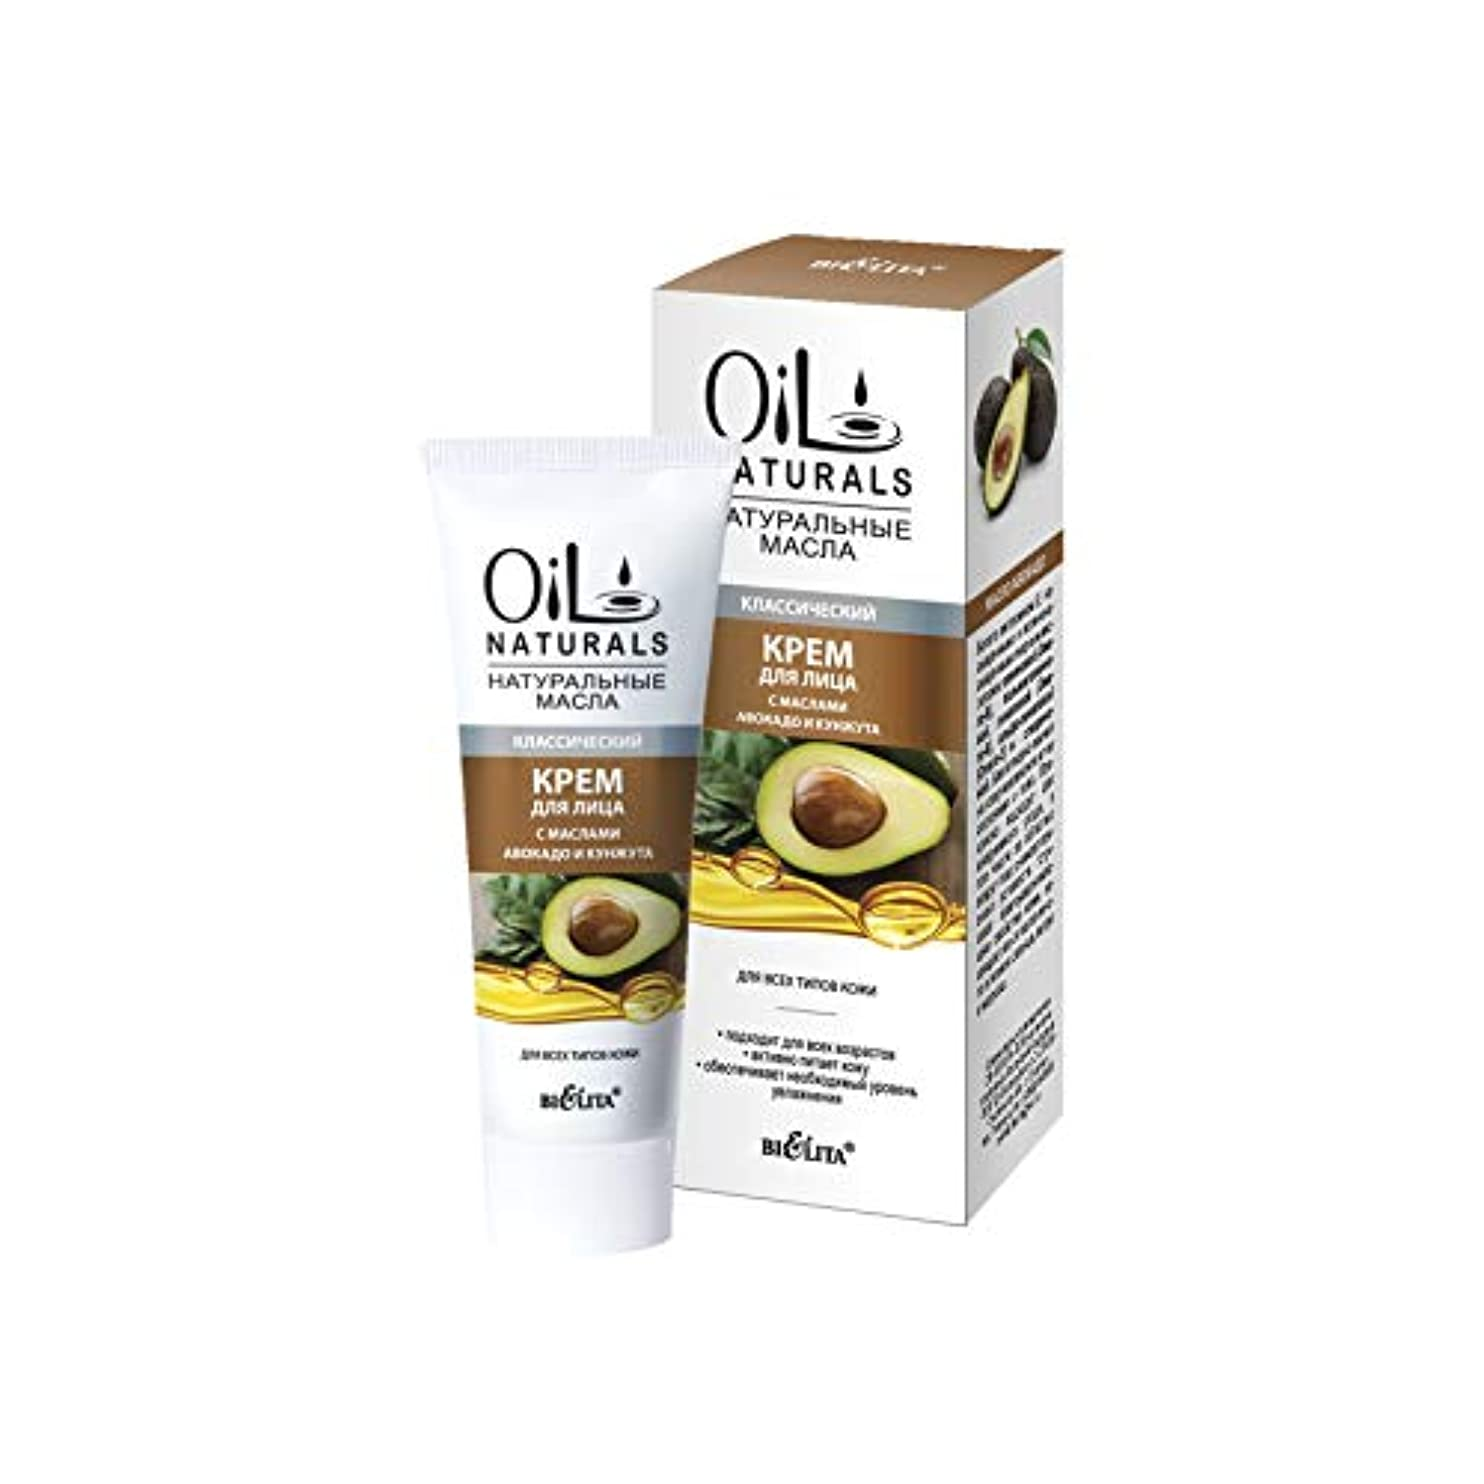 案件掘るびっくりするBielita & Vitex |Oil Naturals Line | Classic Moisturizing Face Cream, for All Skin Types, 50 ml | Avocado Oil,...